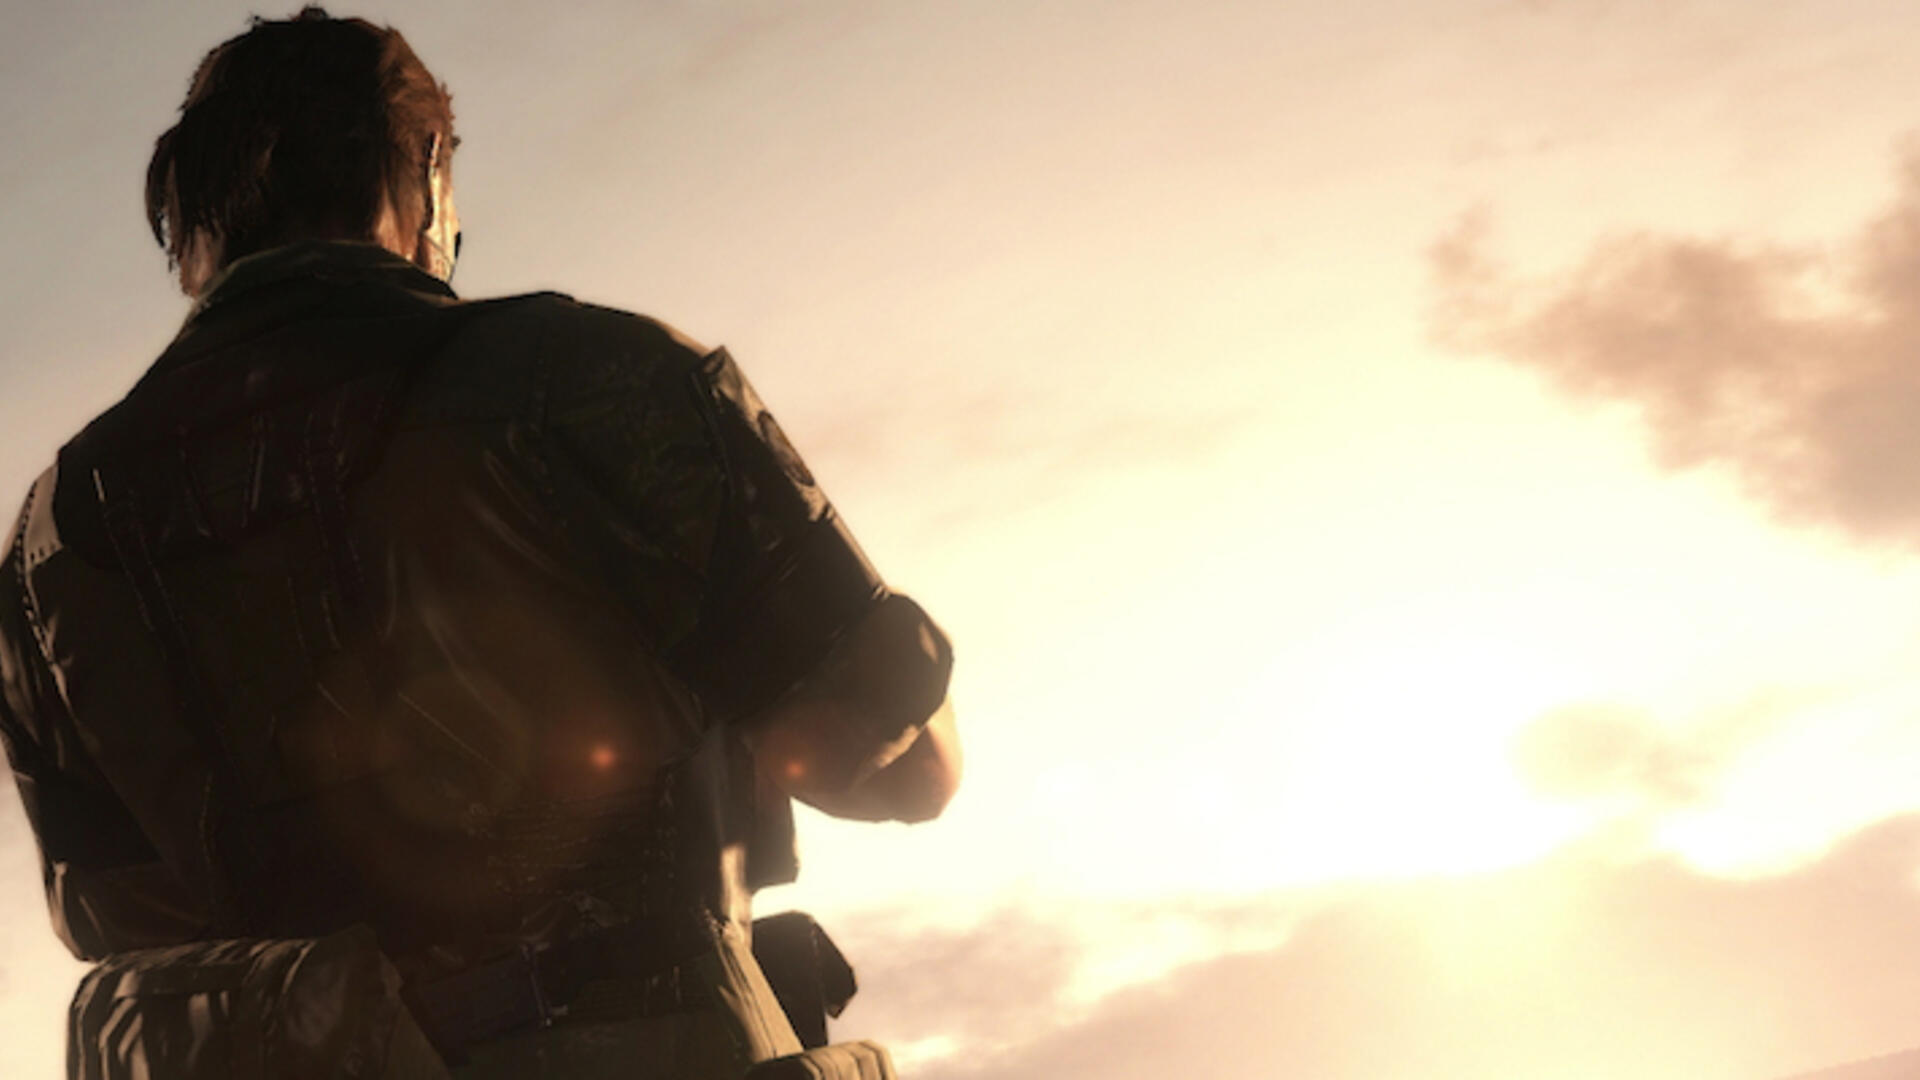 E3 2014: Metal Gear Solid V Combines the Best Elements of Peace Walker and Snake Eater in One Stunning Package